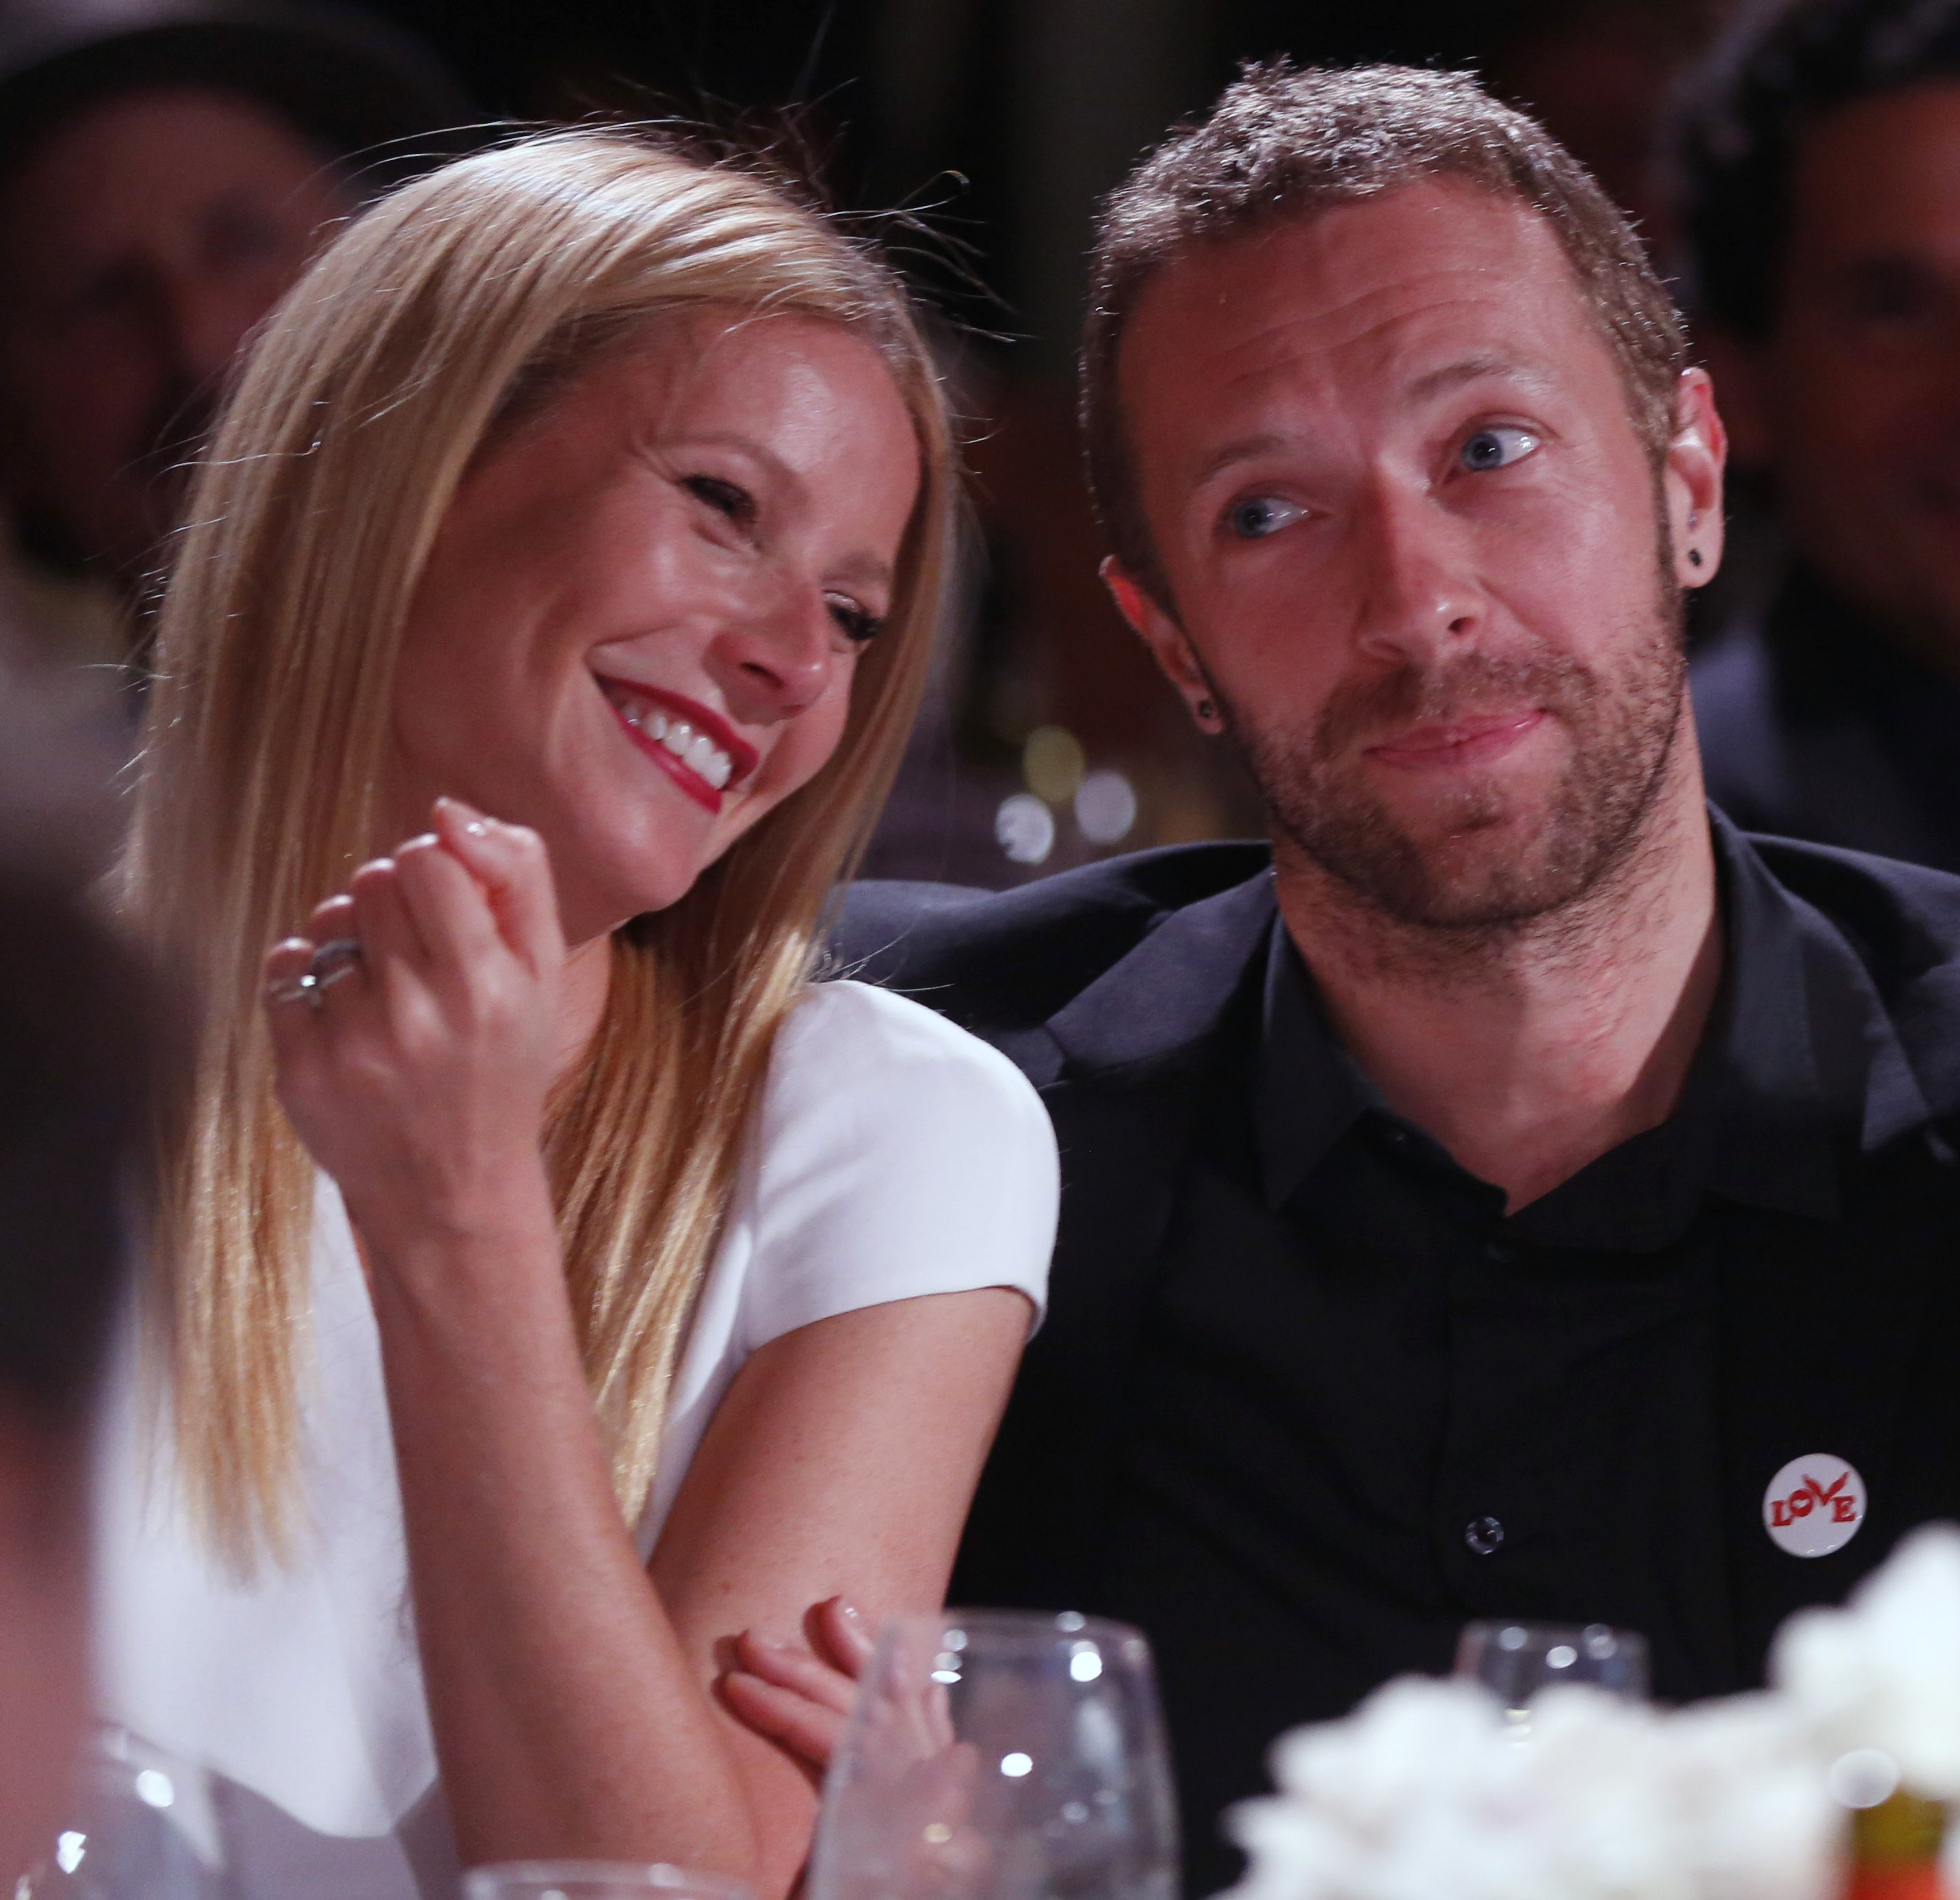 Chris Martin has not responded to divorce filing